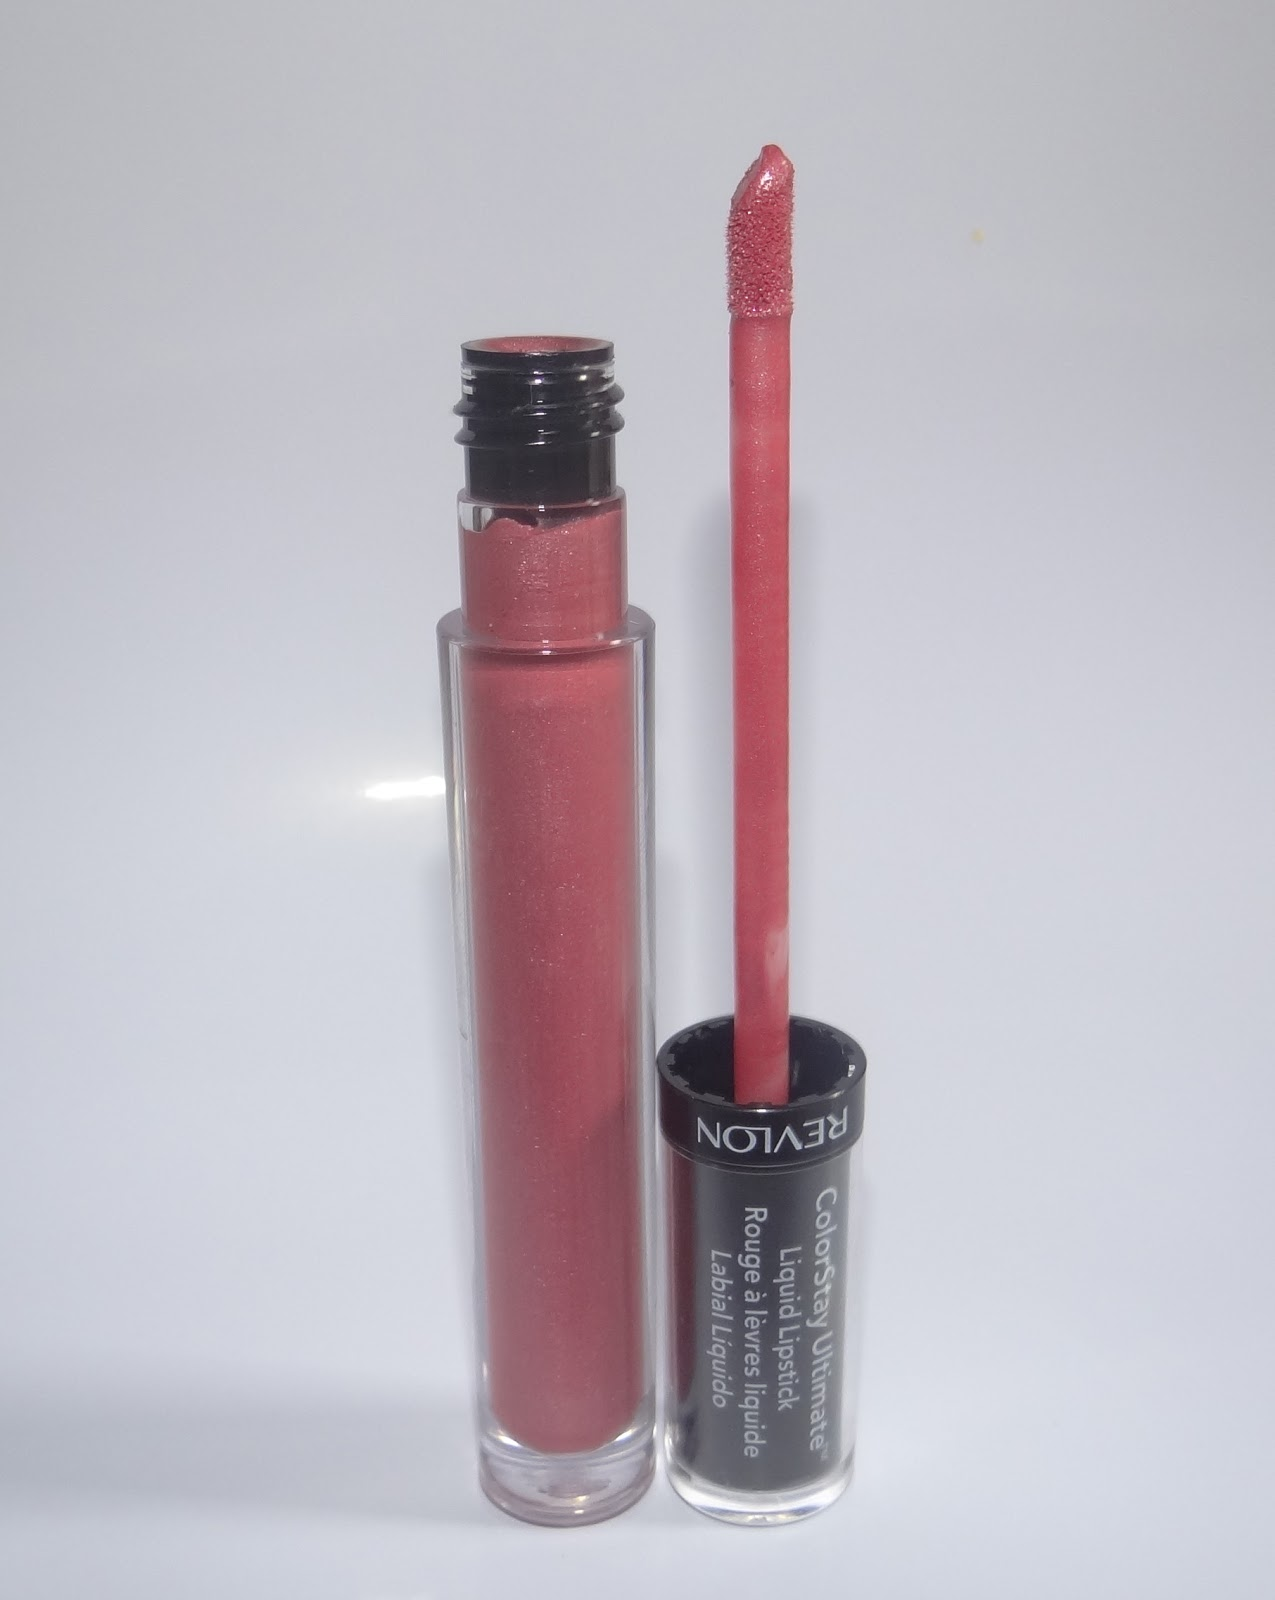 Revlon Colorstay Ultimate Liquid lipstick- review